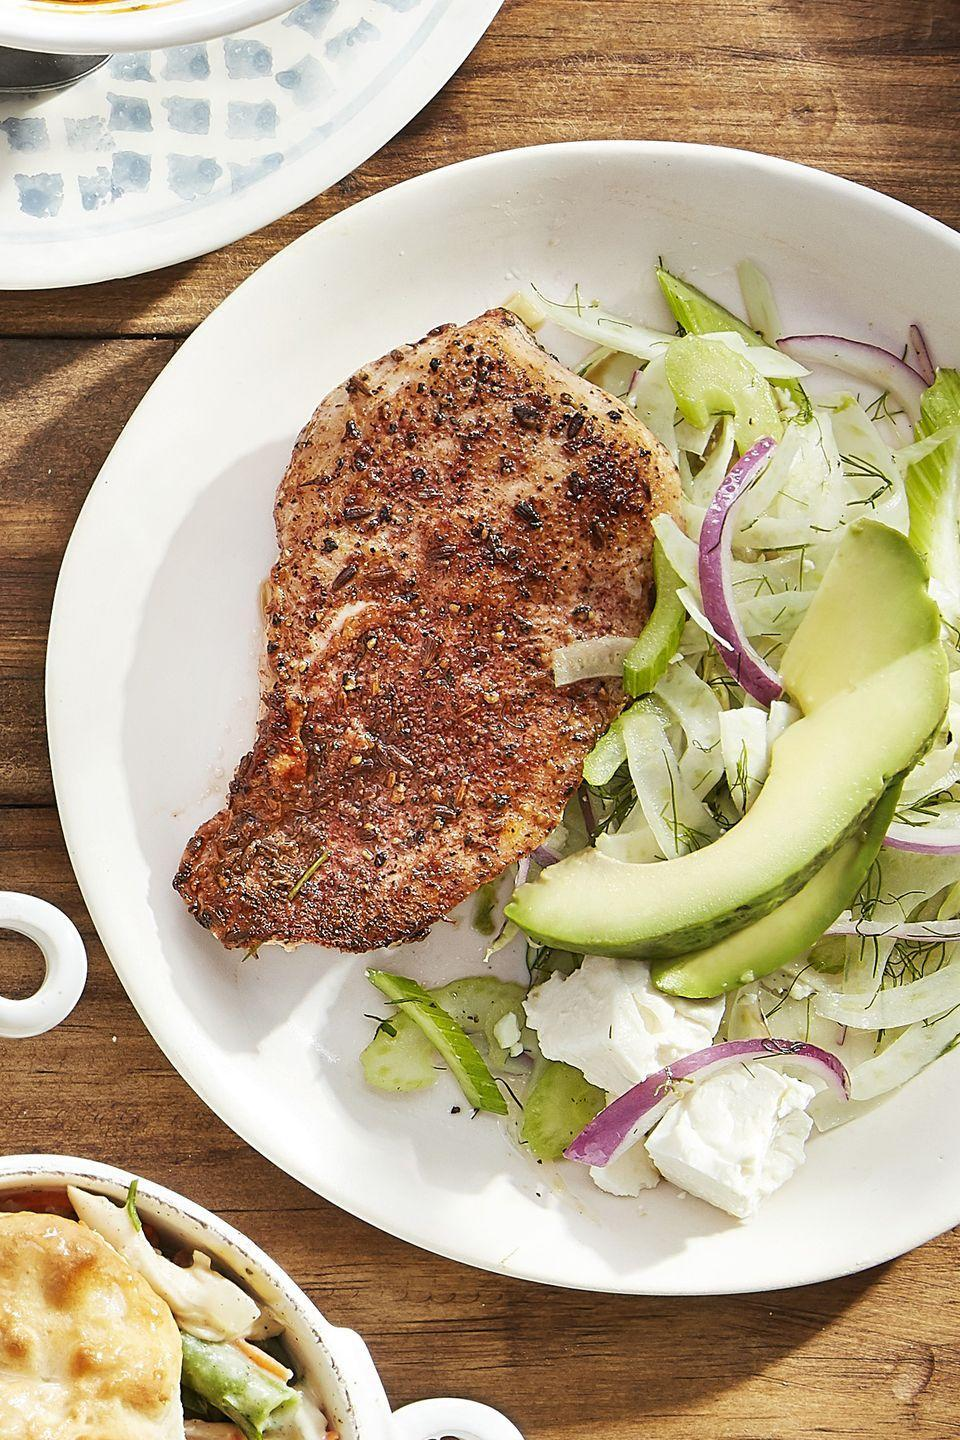 "<p>An avocado, fennel, and onion slaw elevates a crispy chicken dinner.</p><p><a href=""https://www.countryliving.com/food-drinks/recipes/a44250/blackened-chicken-fennel-slaw-recipe/"" rel=""nofollow noopener"" target=""_blank"" data-ylk=""slk:Get the recipe."" class=""link rapid-noclick-resp""><strong>Get the recipe.</strong></a></p>"